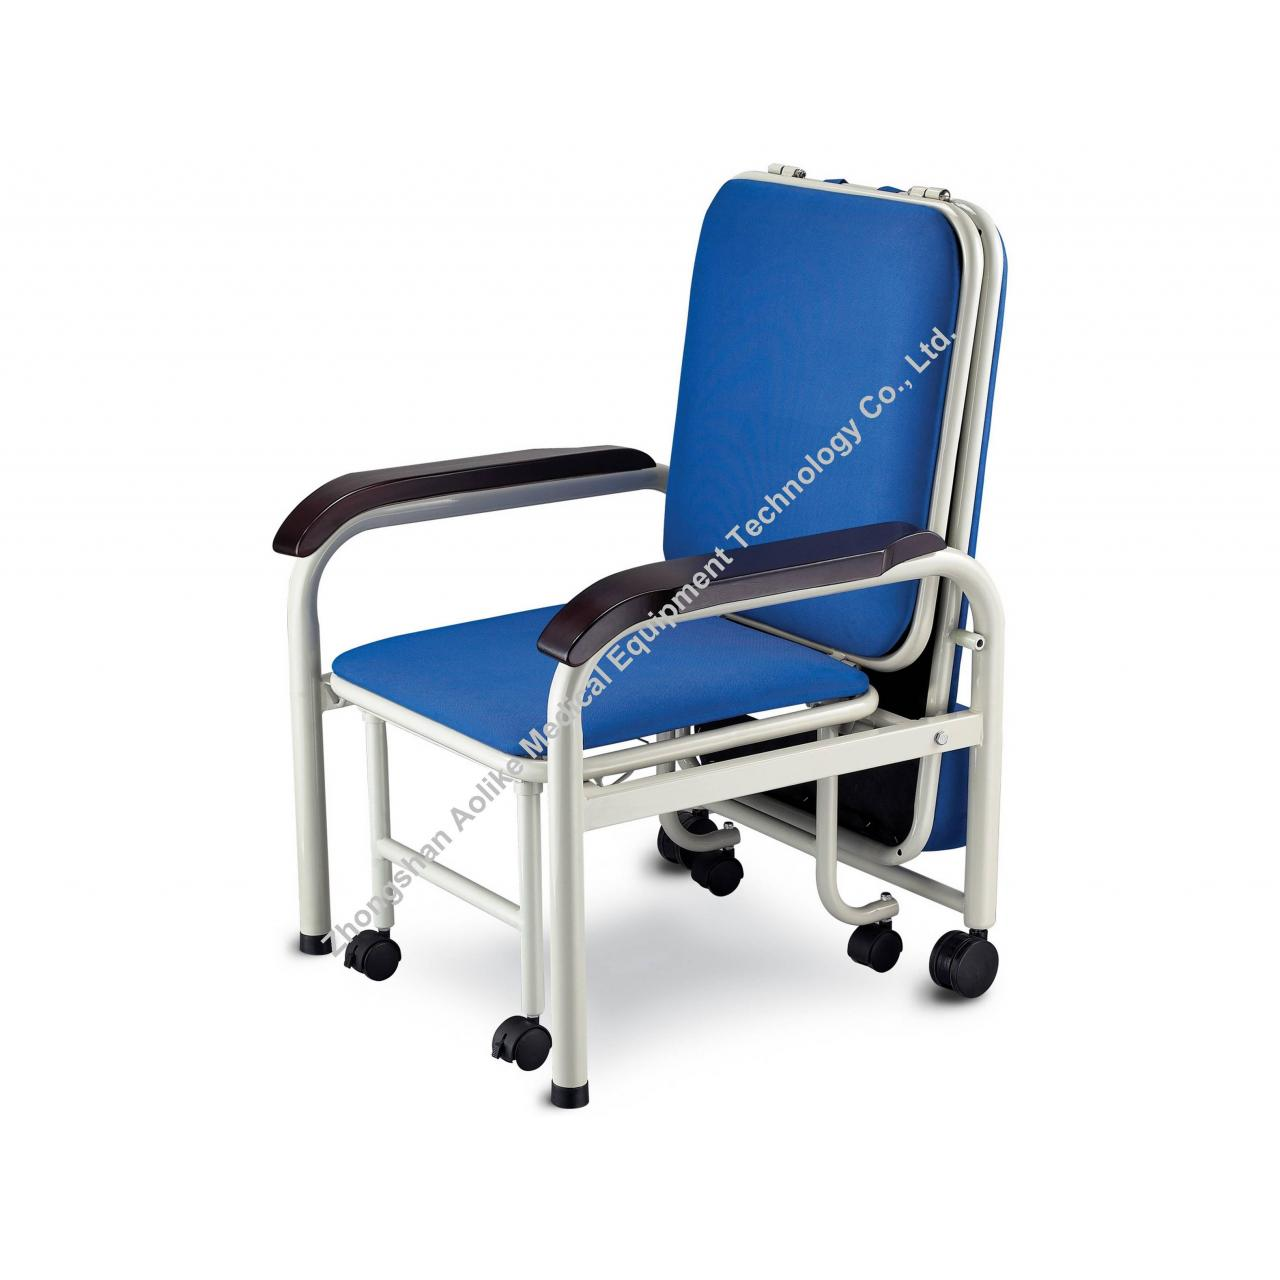 Hospital Chairs Nursing chair Manufactures